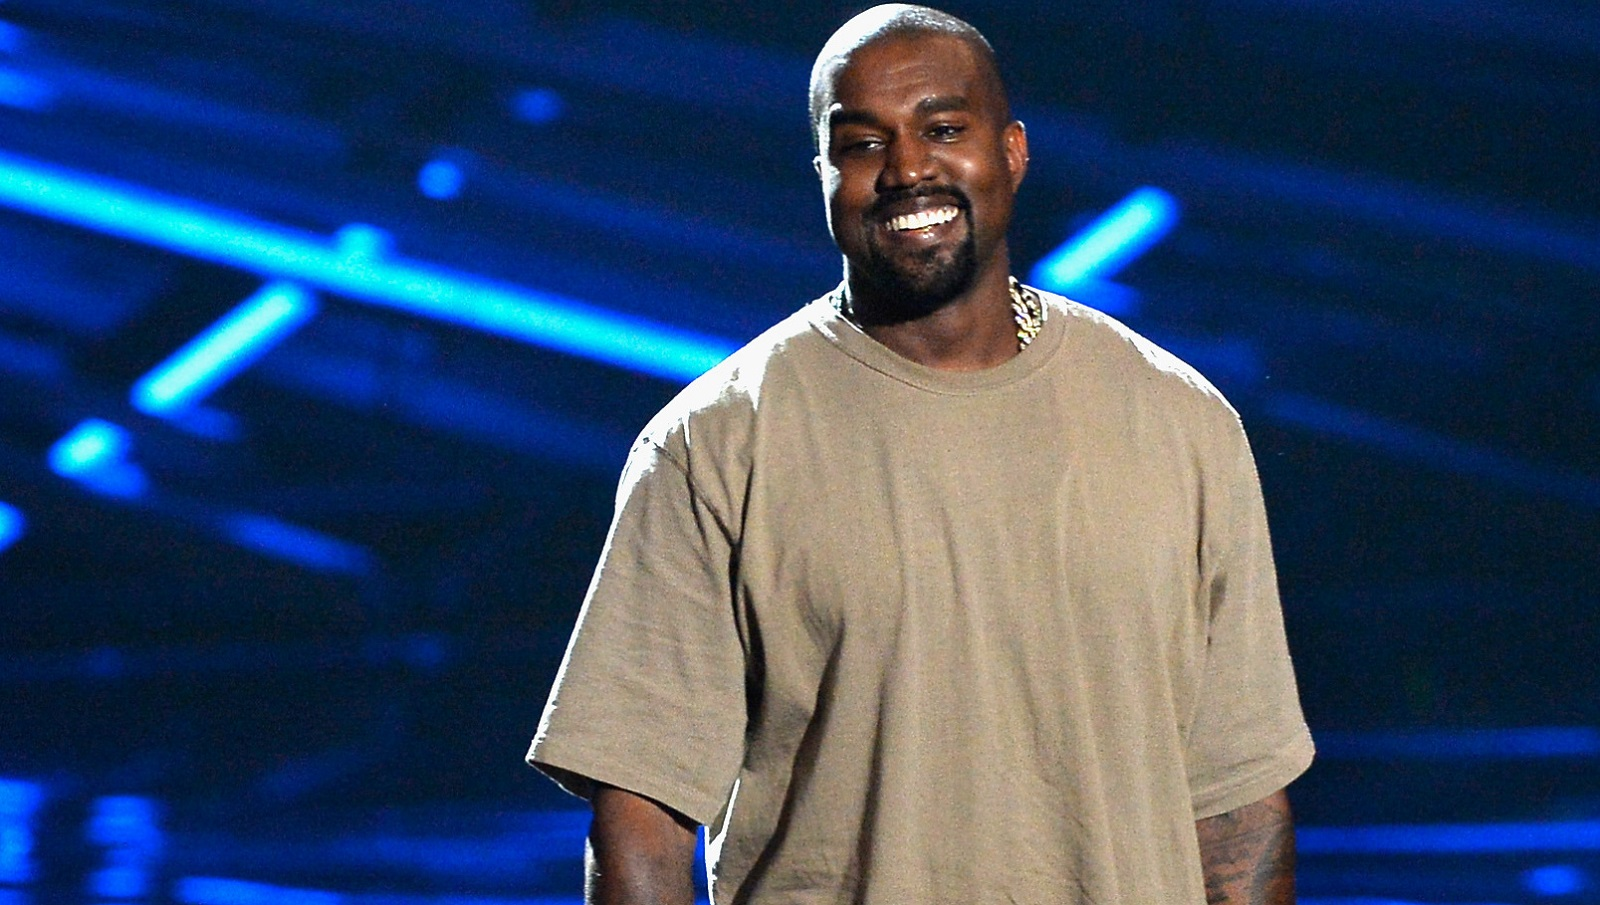 Kanye West comes across as a 'self-obsessed jerk' in 'Pablo,' Jeff Miers writes. (Getty Images)